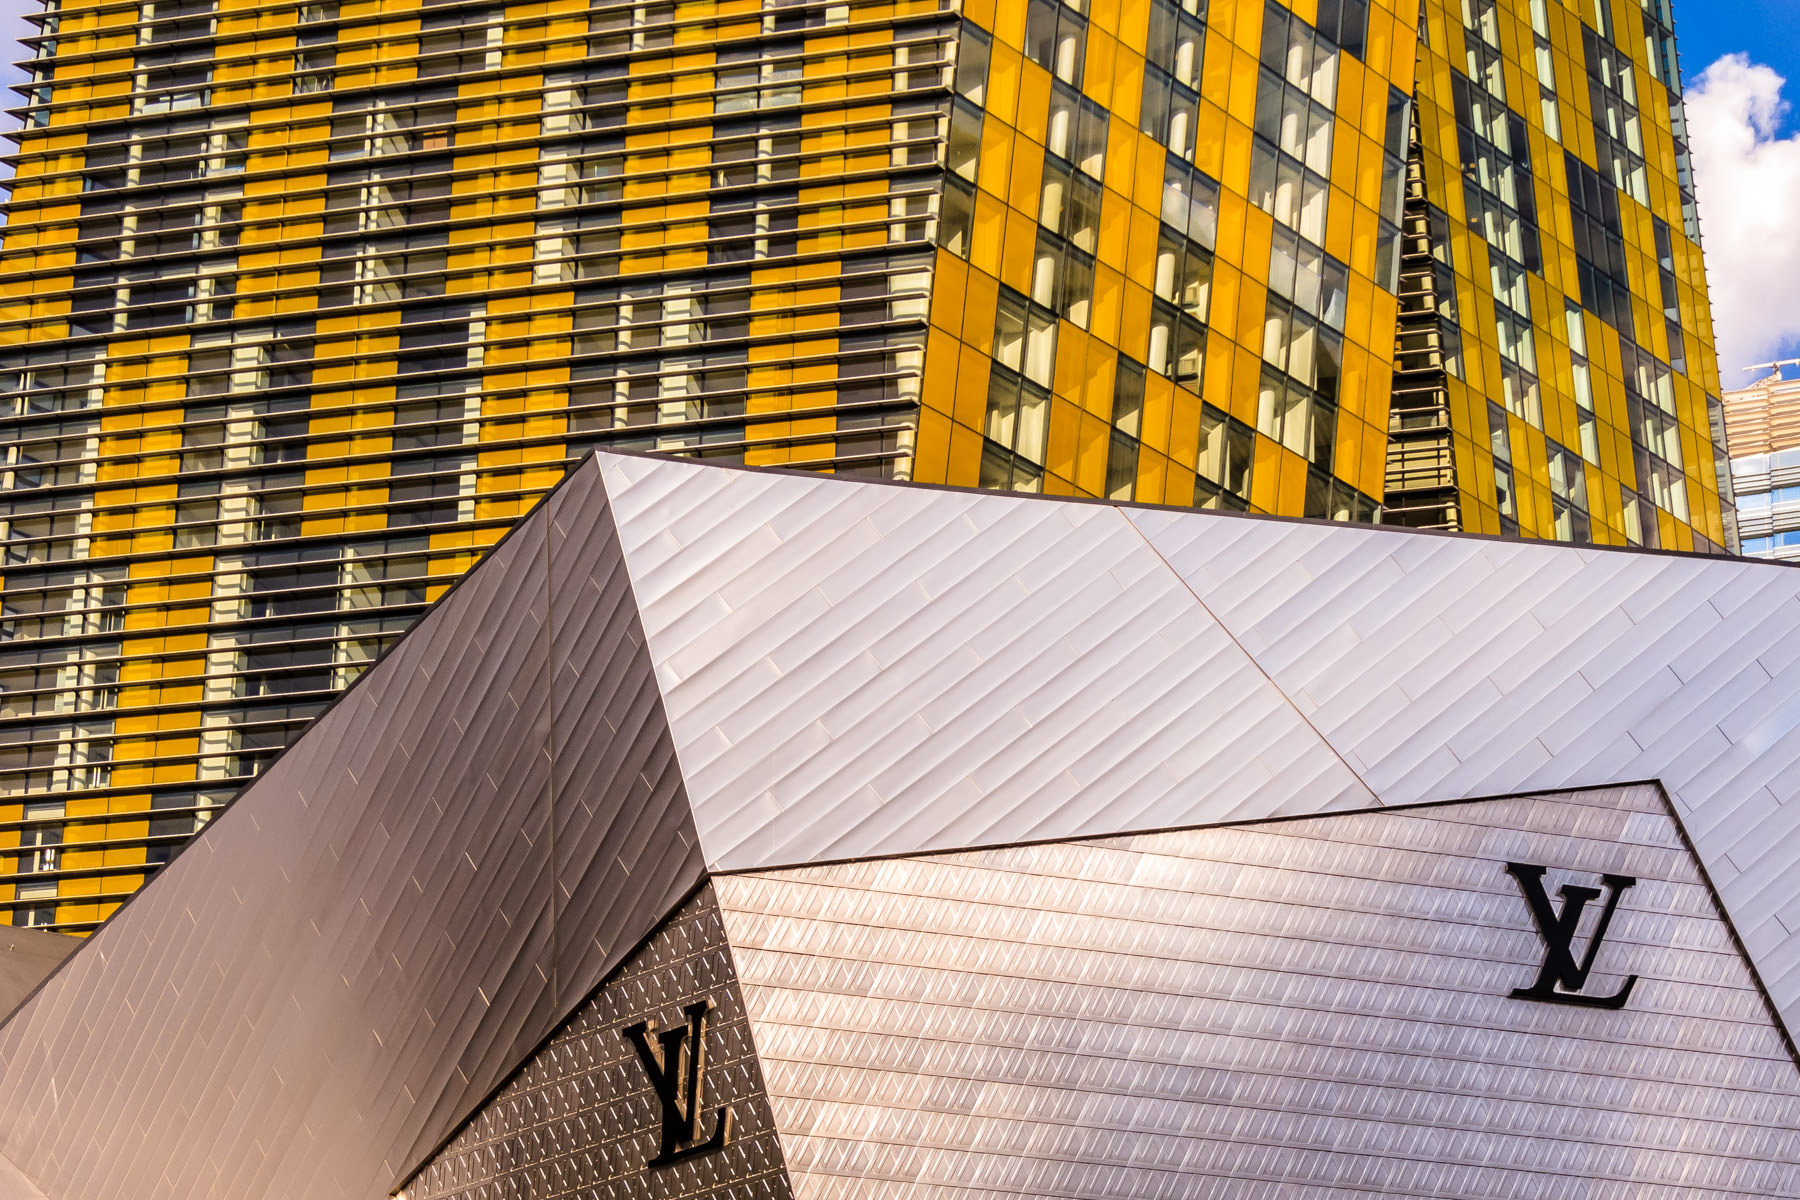 The Veer Towers loom over Louis Vuitton at The Crystals at CityCenter, Las Vegas, Nevada.